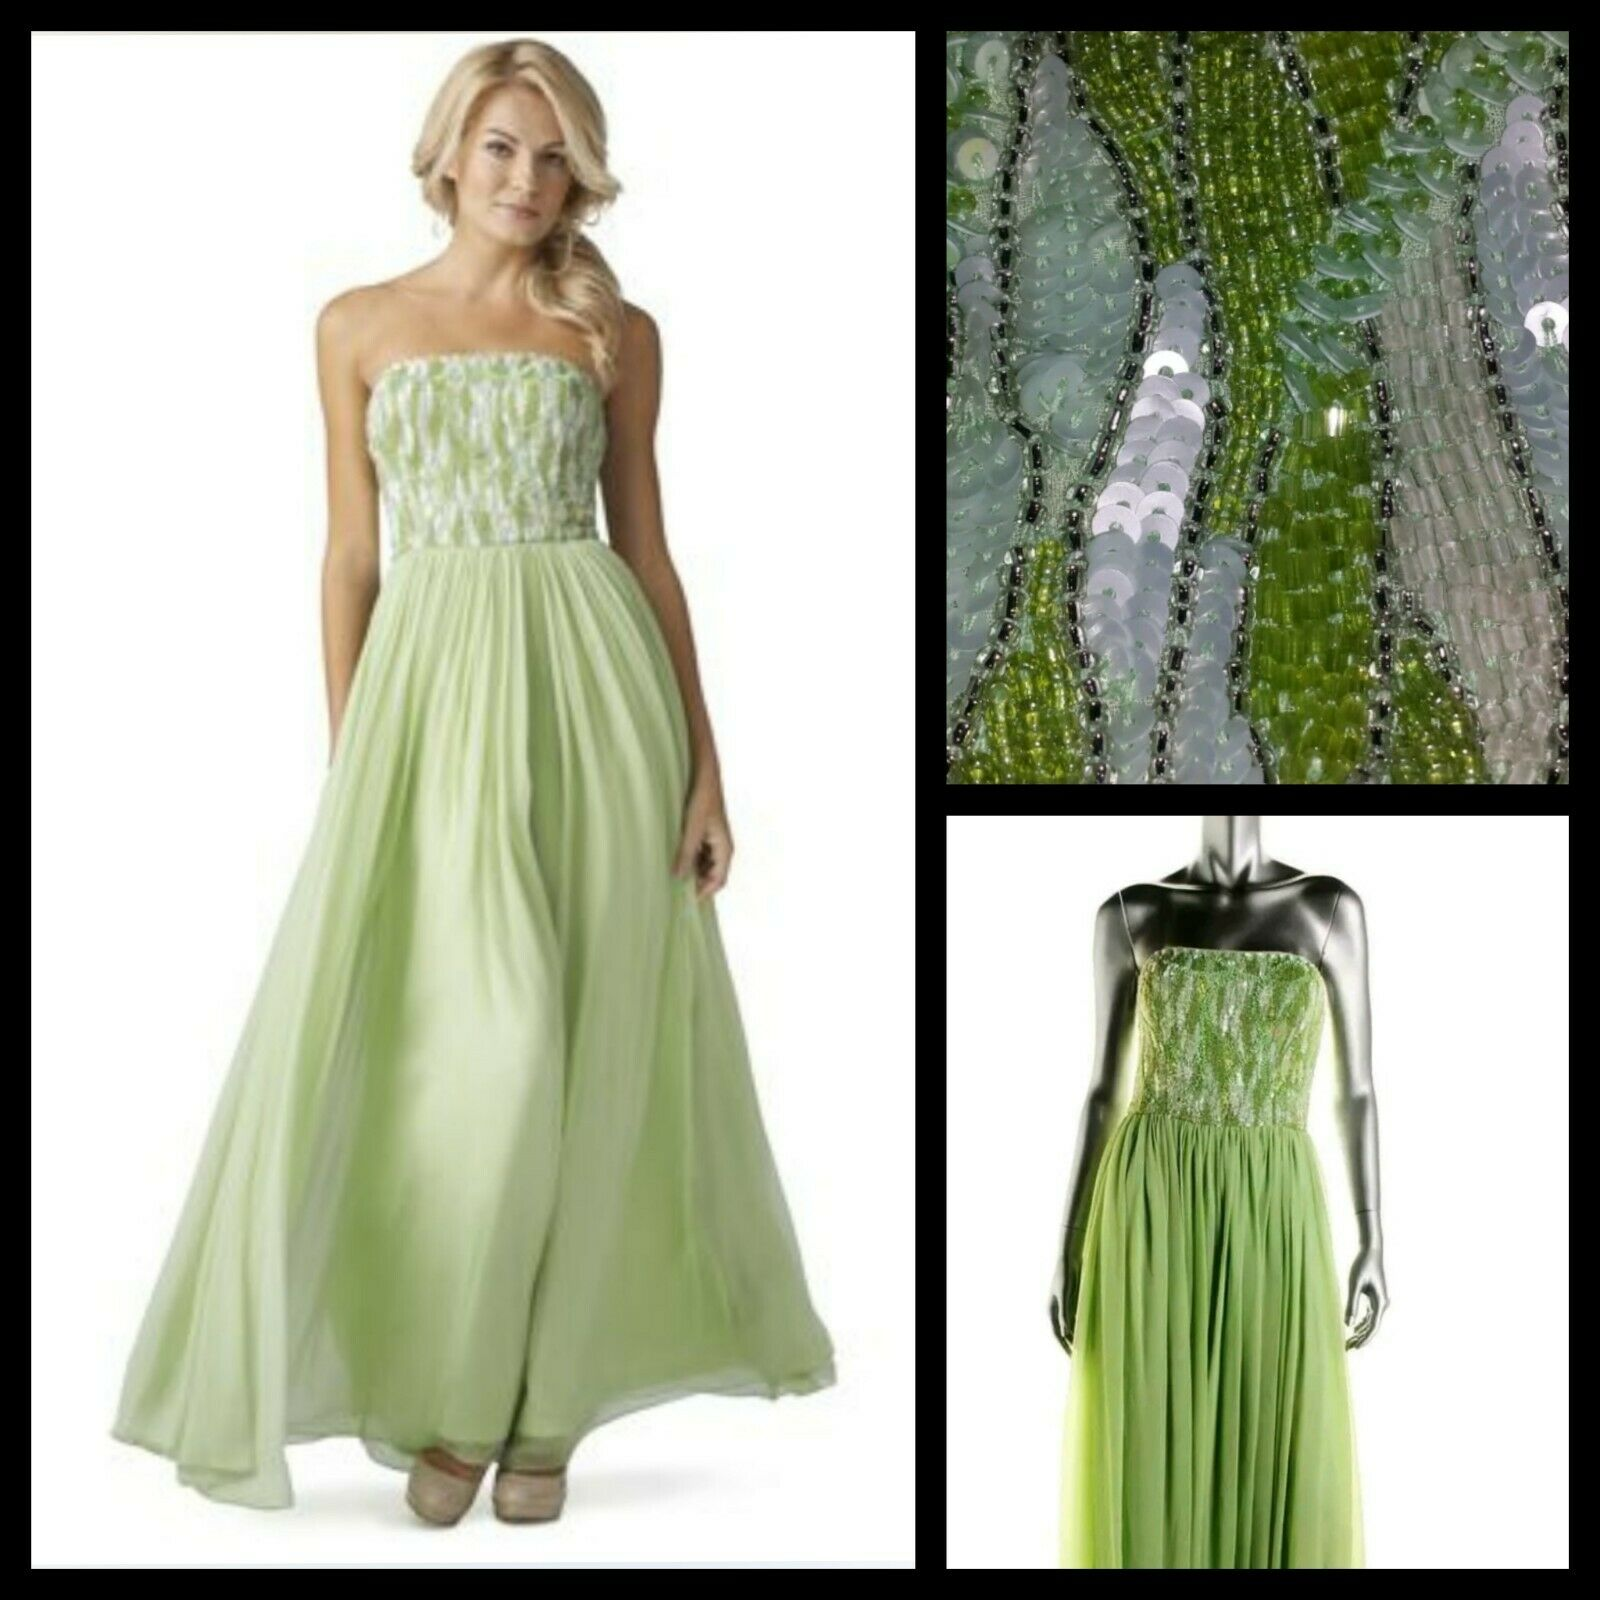 440 AIDAN MATTOX Green Embellished Beaded Strapless Formal Gown  4  M3020